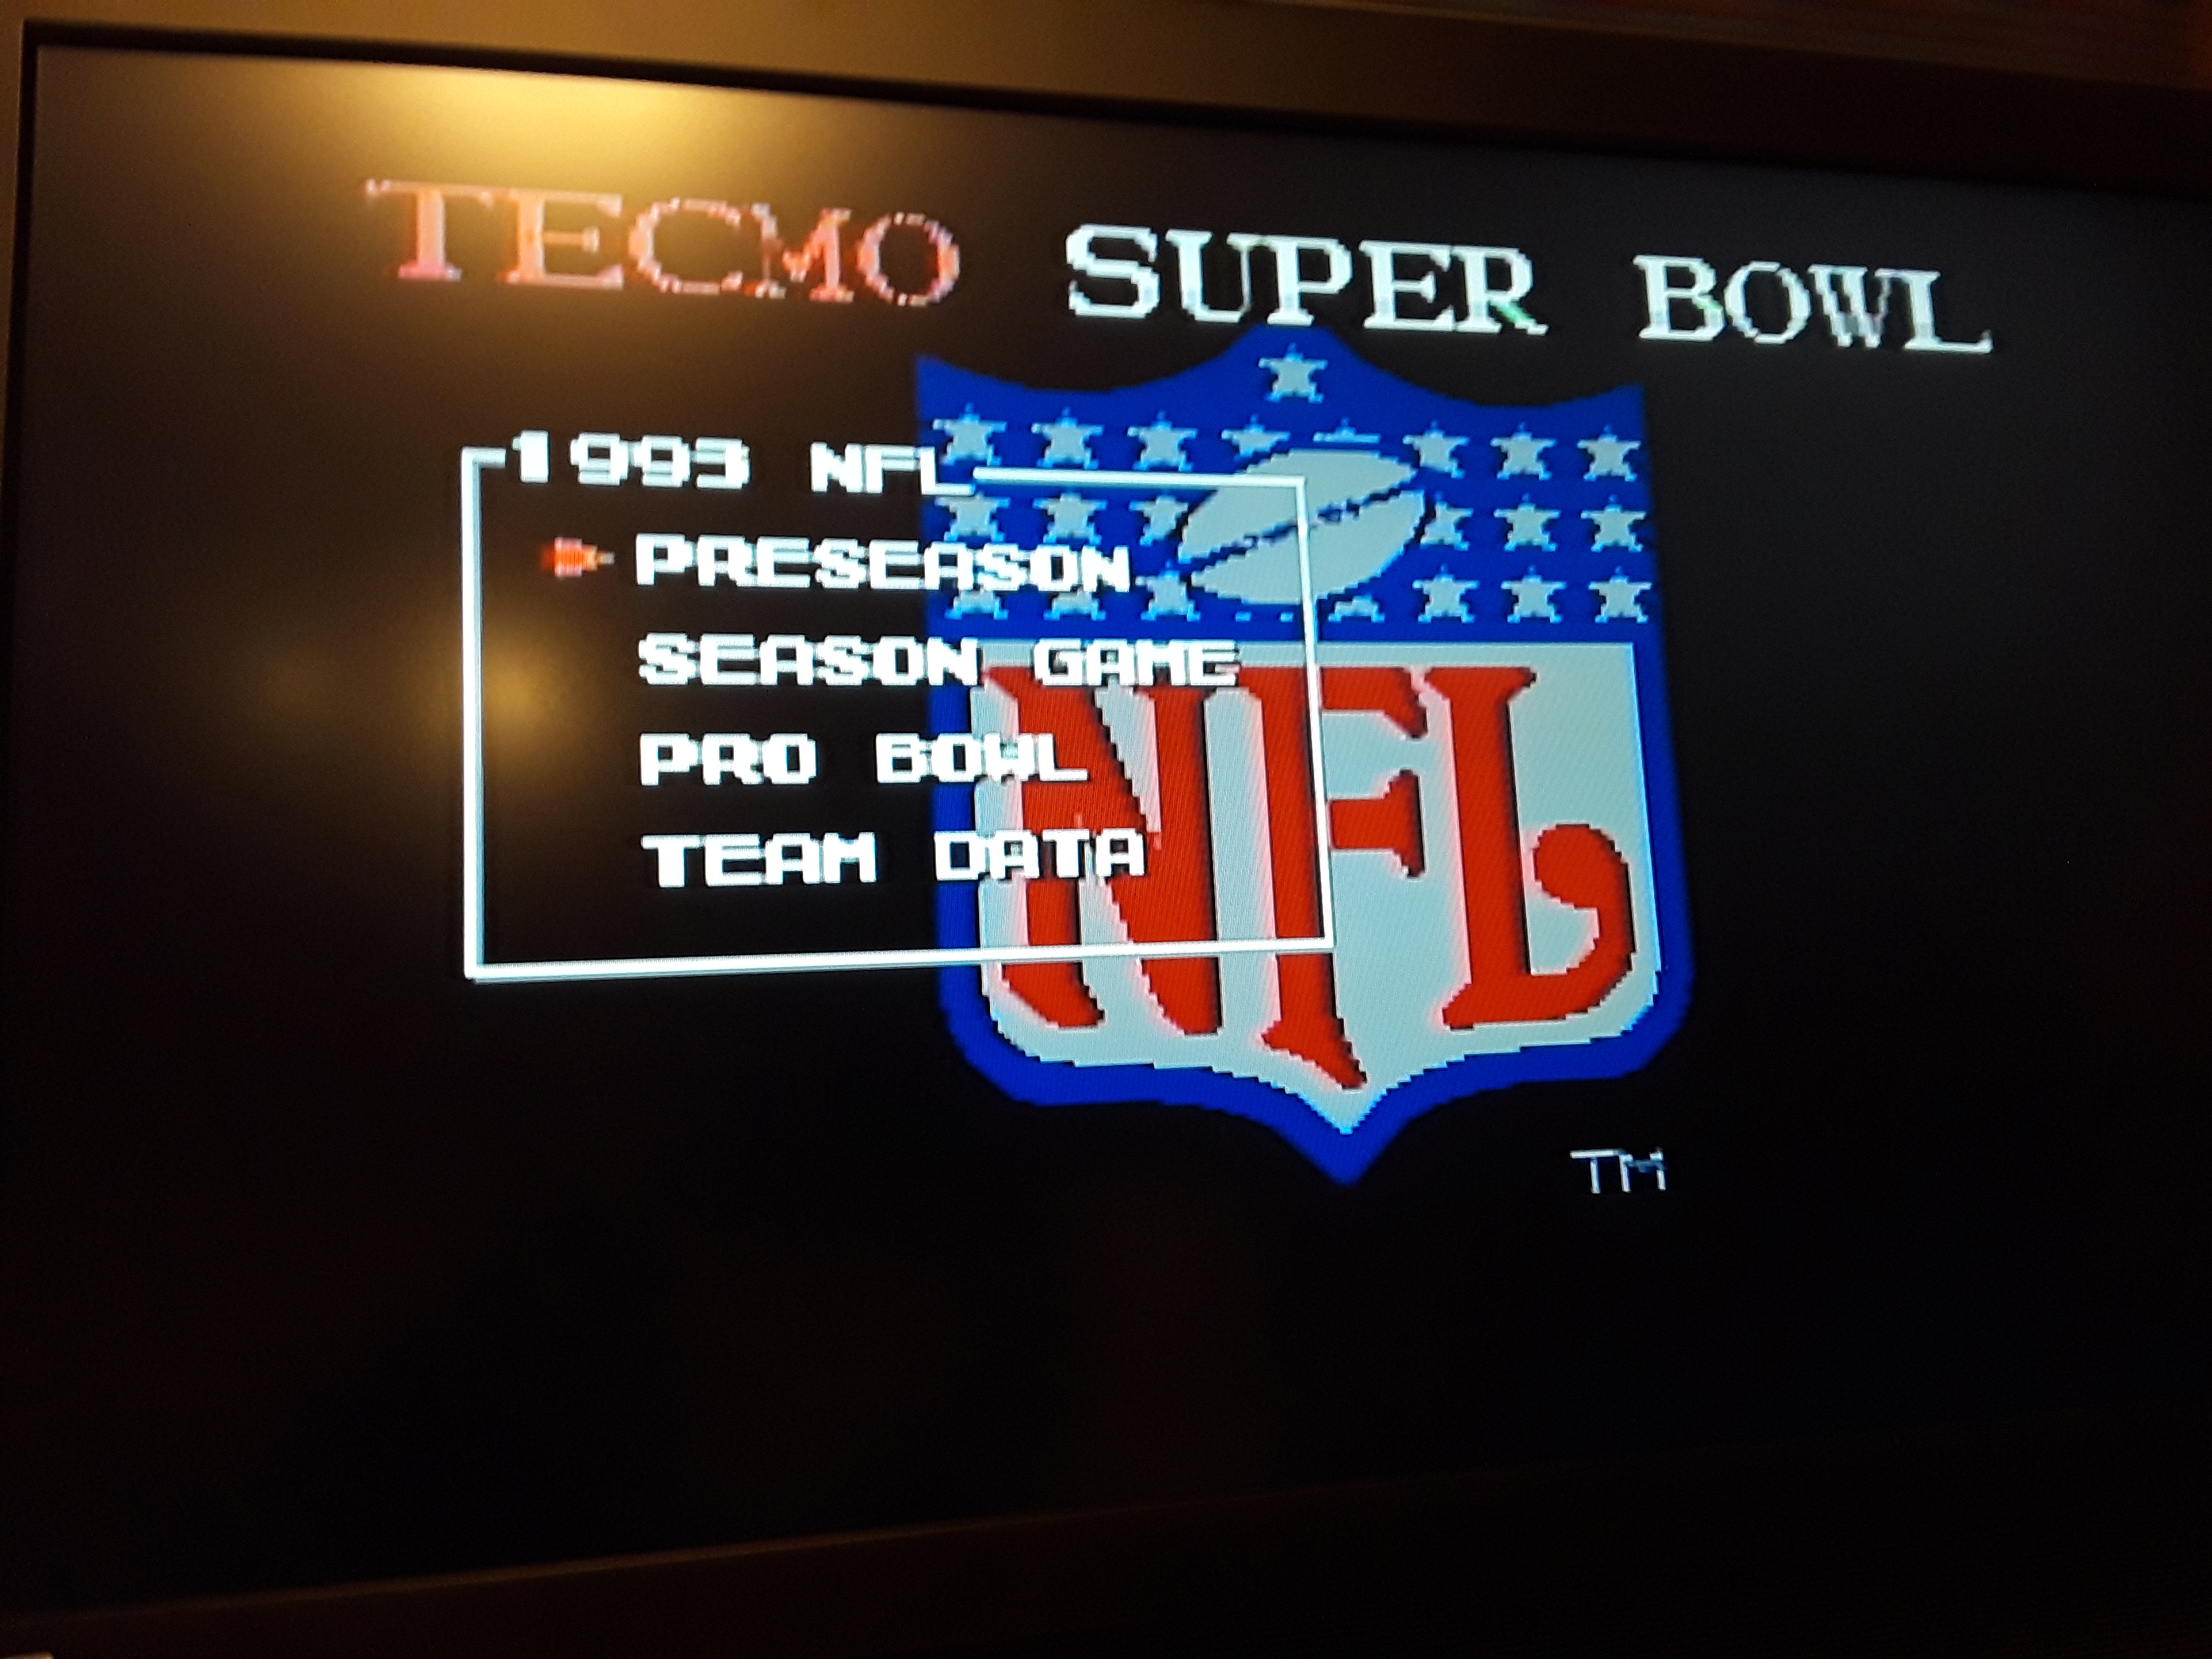 Tecmo Super Bowl [Most Receiving Yards] [Preseason game] 189 points